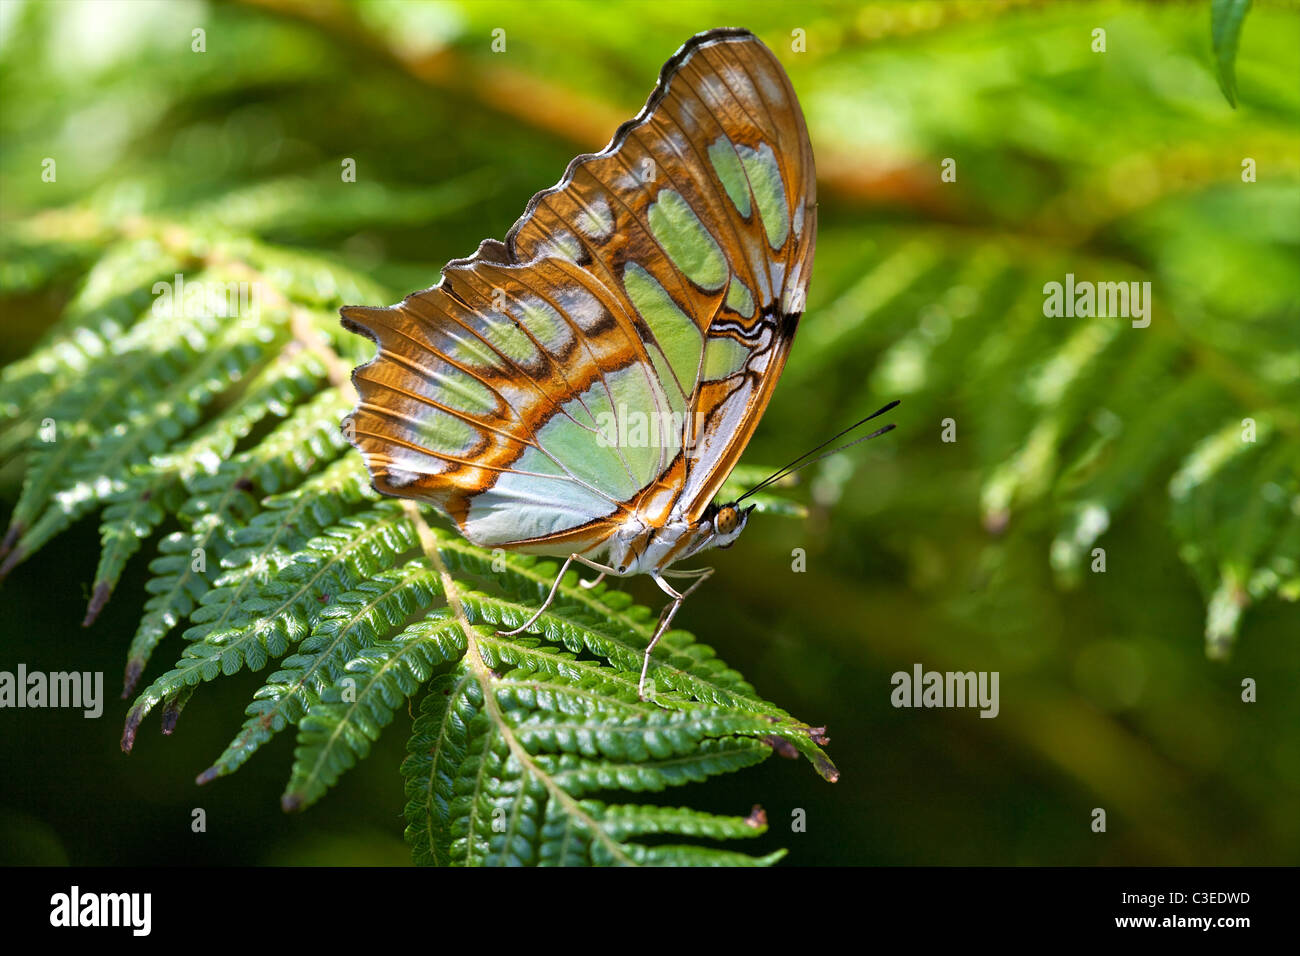 Malachite Butterfly (Siproeta stelenes) on a fern. - Stock Image